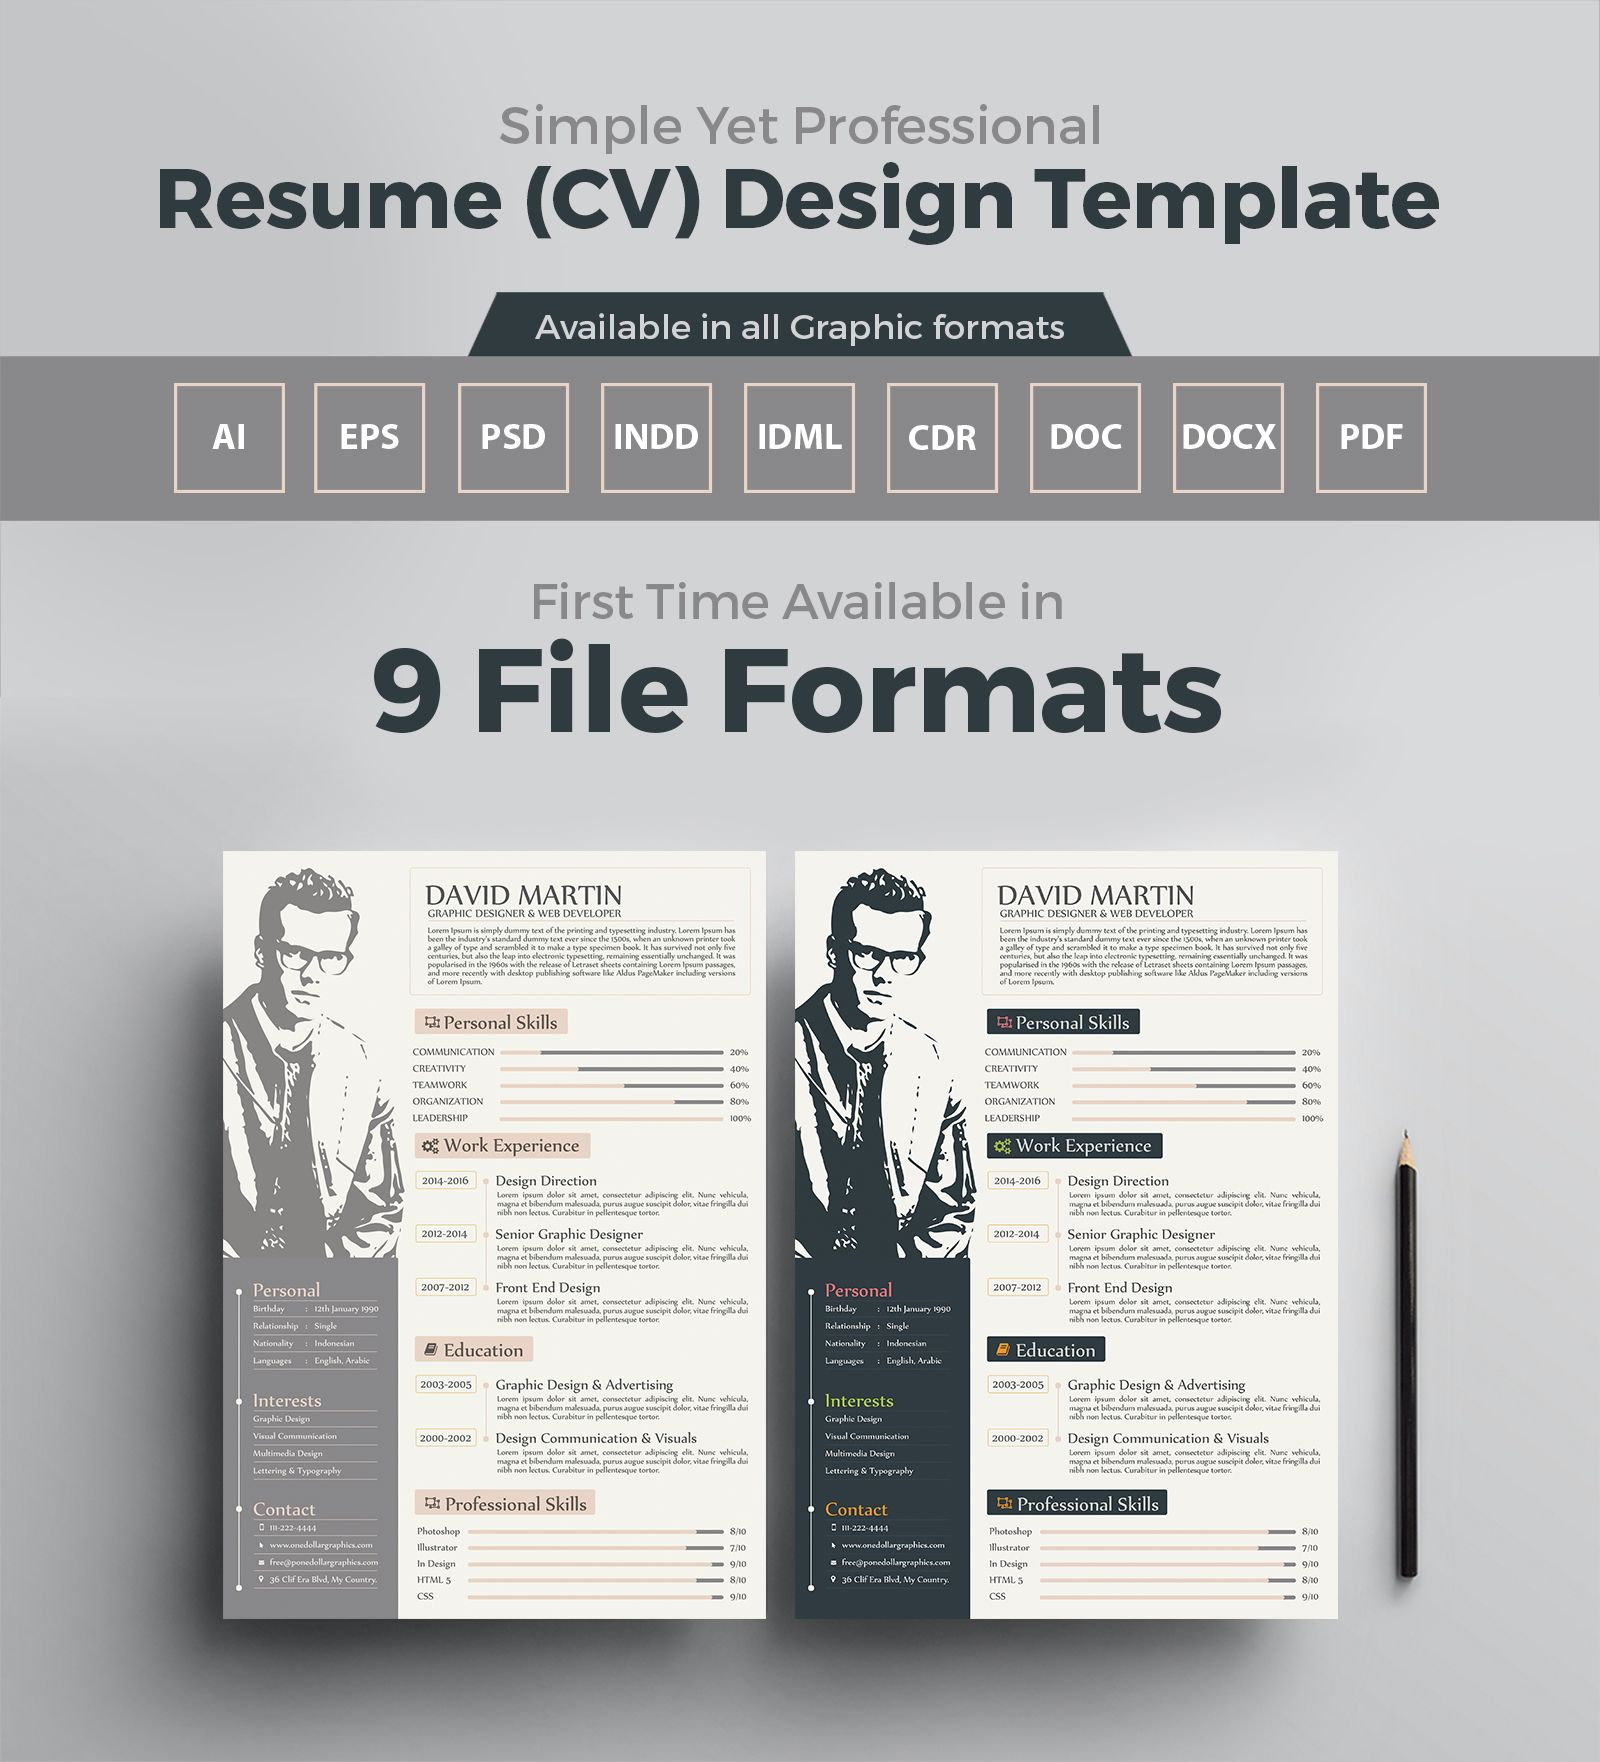 simple-yet-professional-resume-cv-design-template-3 | Random Stuff ...